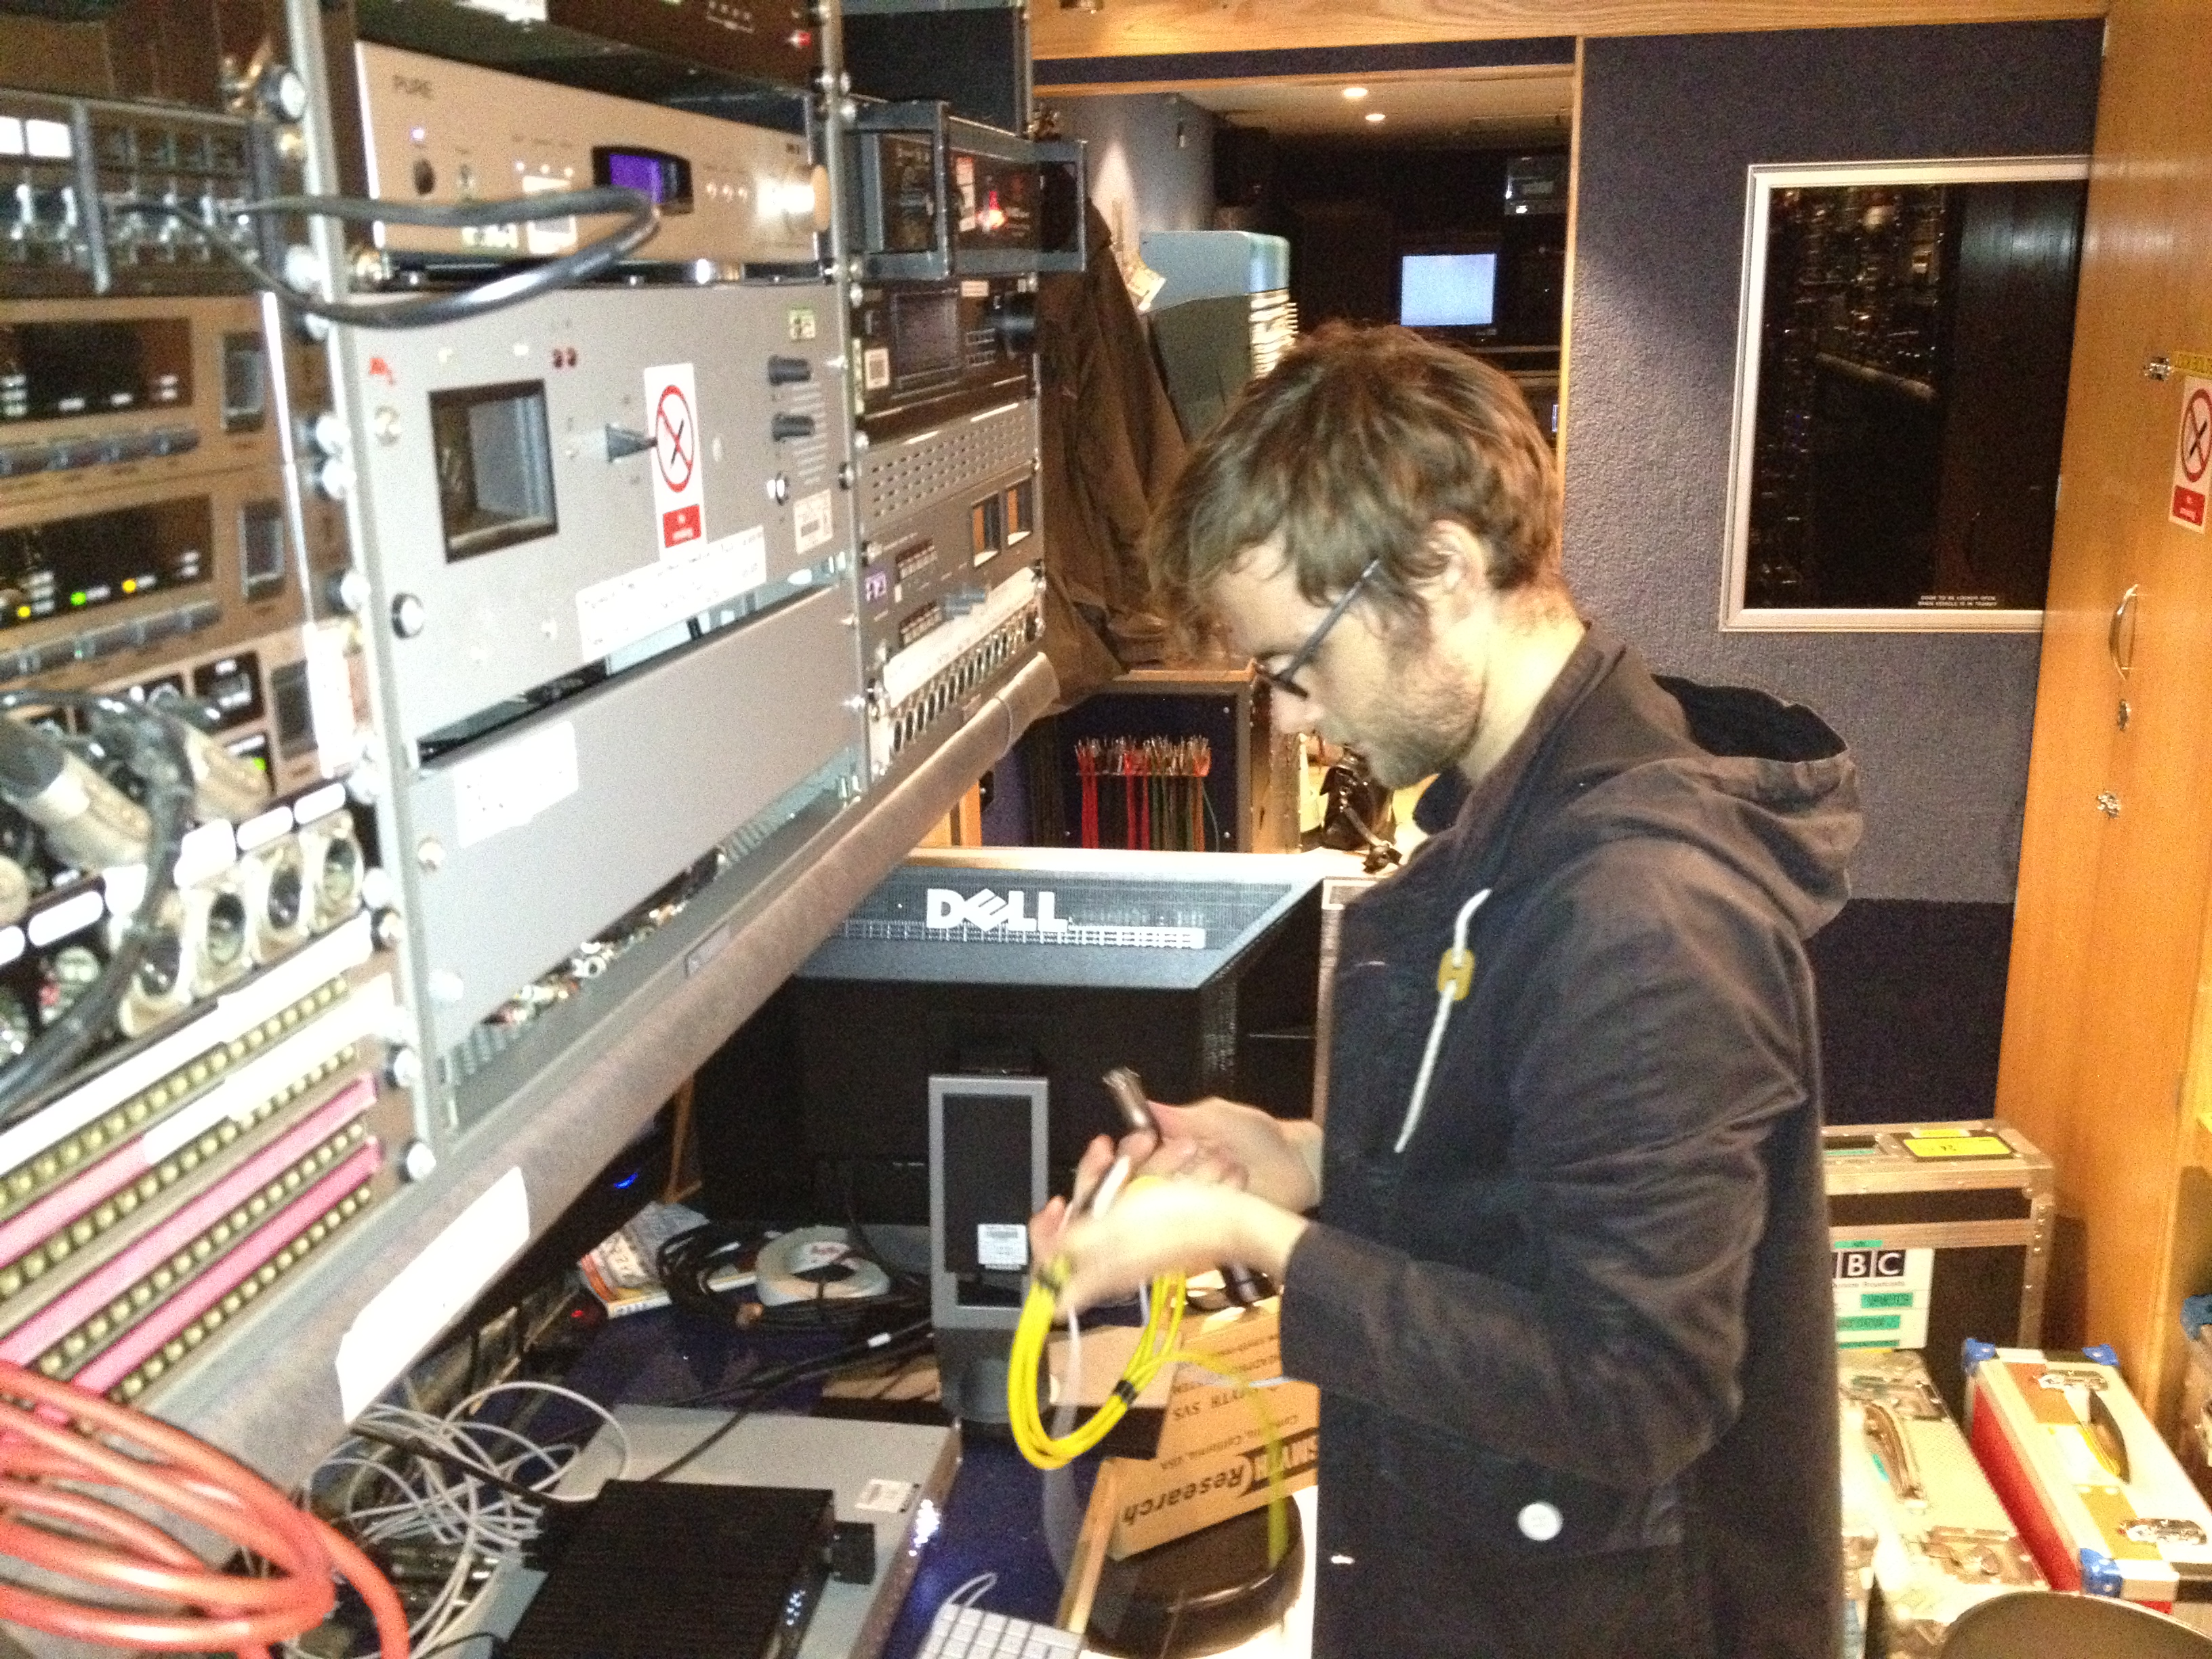 Chris Pike setting up the recording equipment in the back of the outside broadcast truck